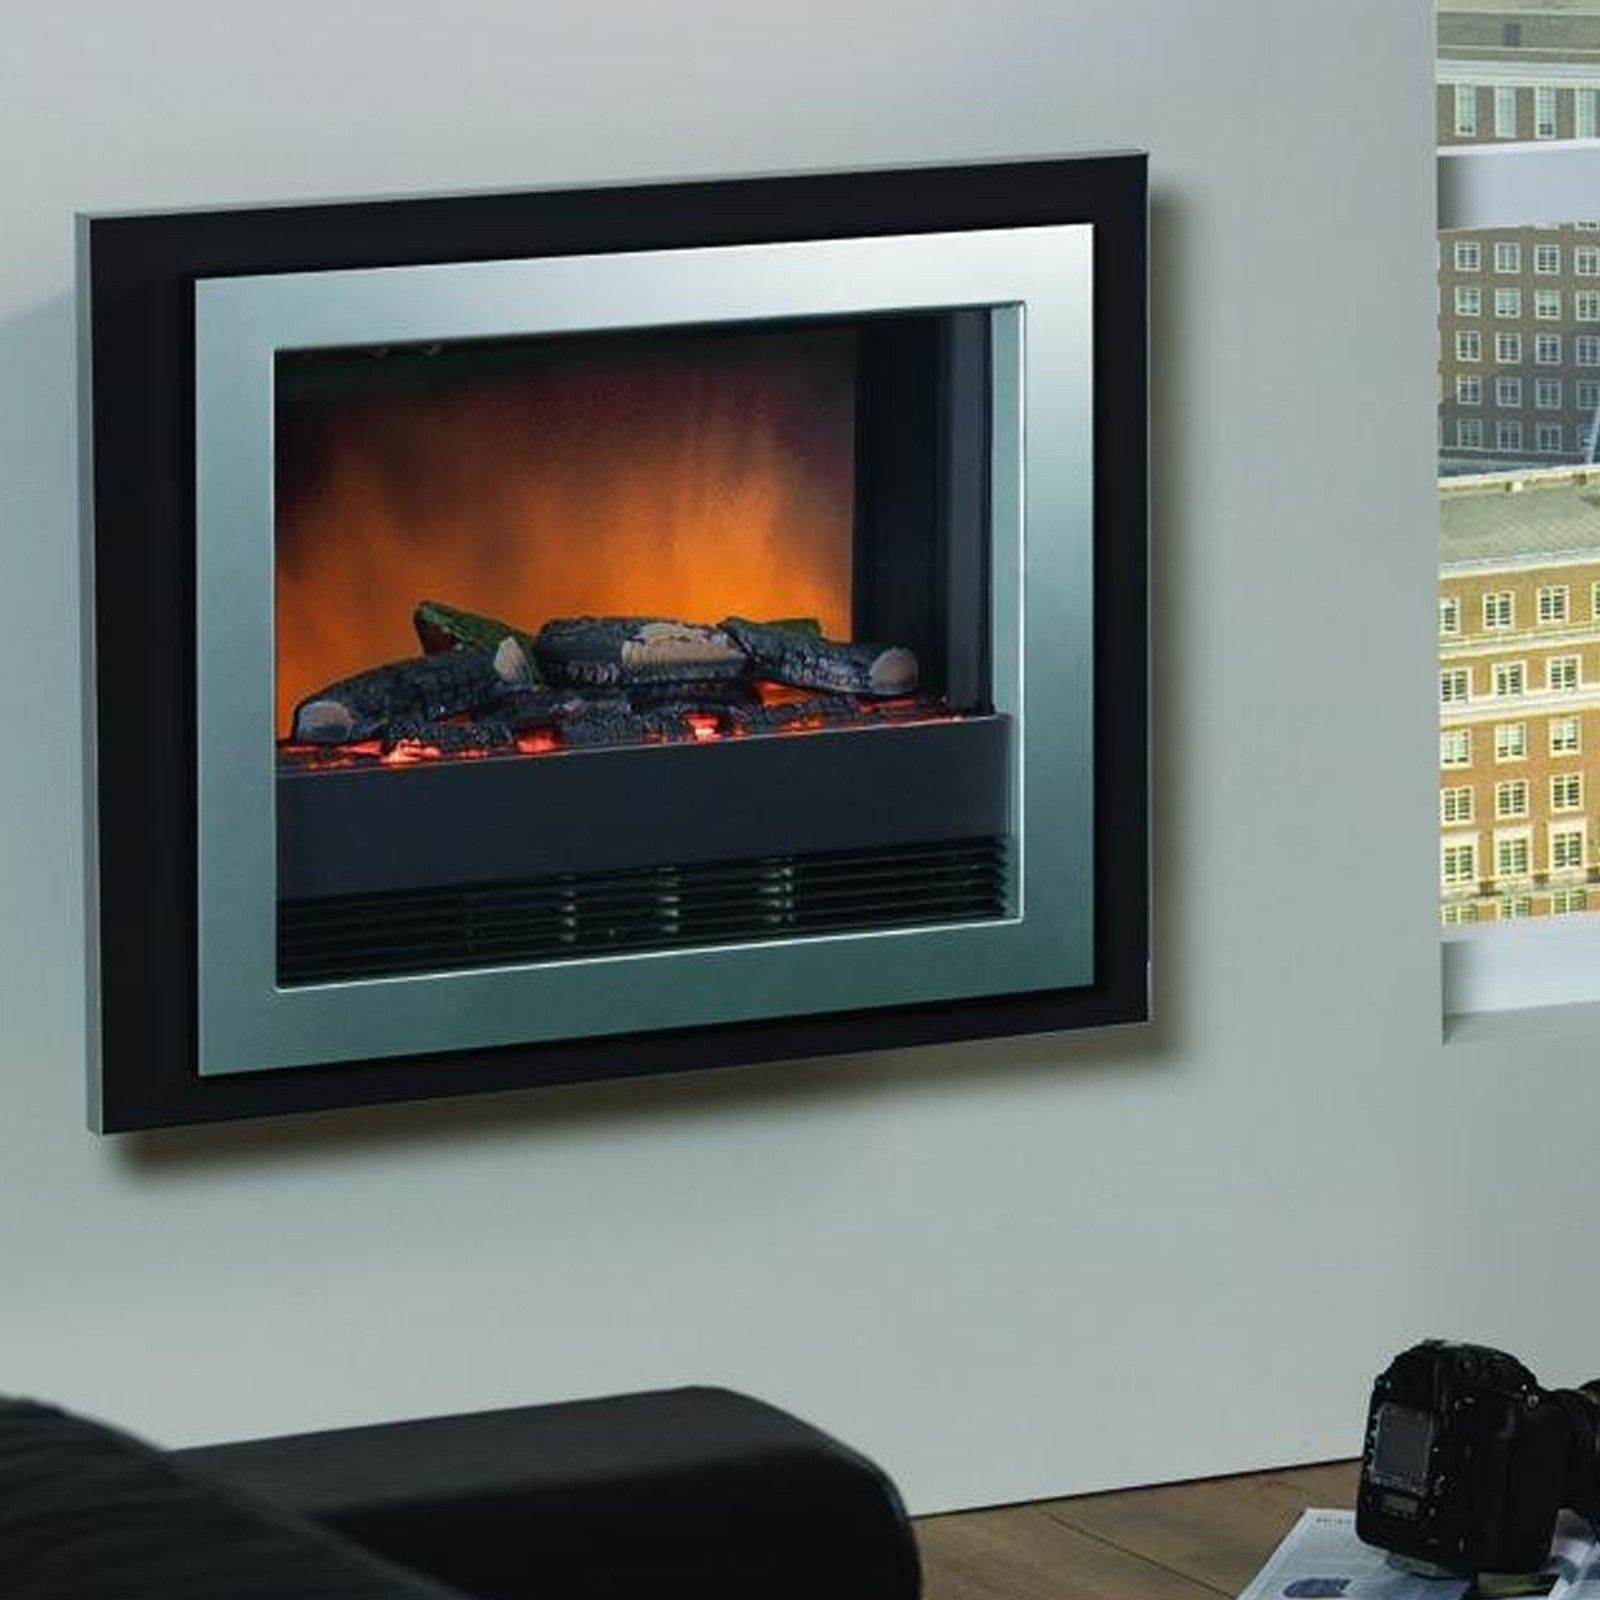 Dimplex bizet optiflame wall mounted electric fire wall